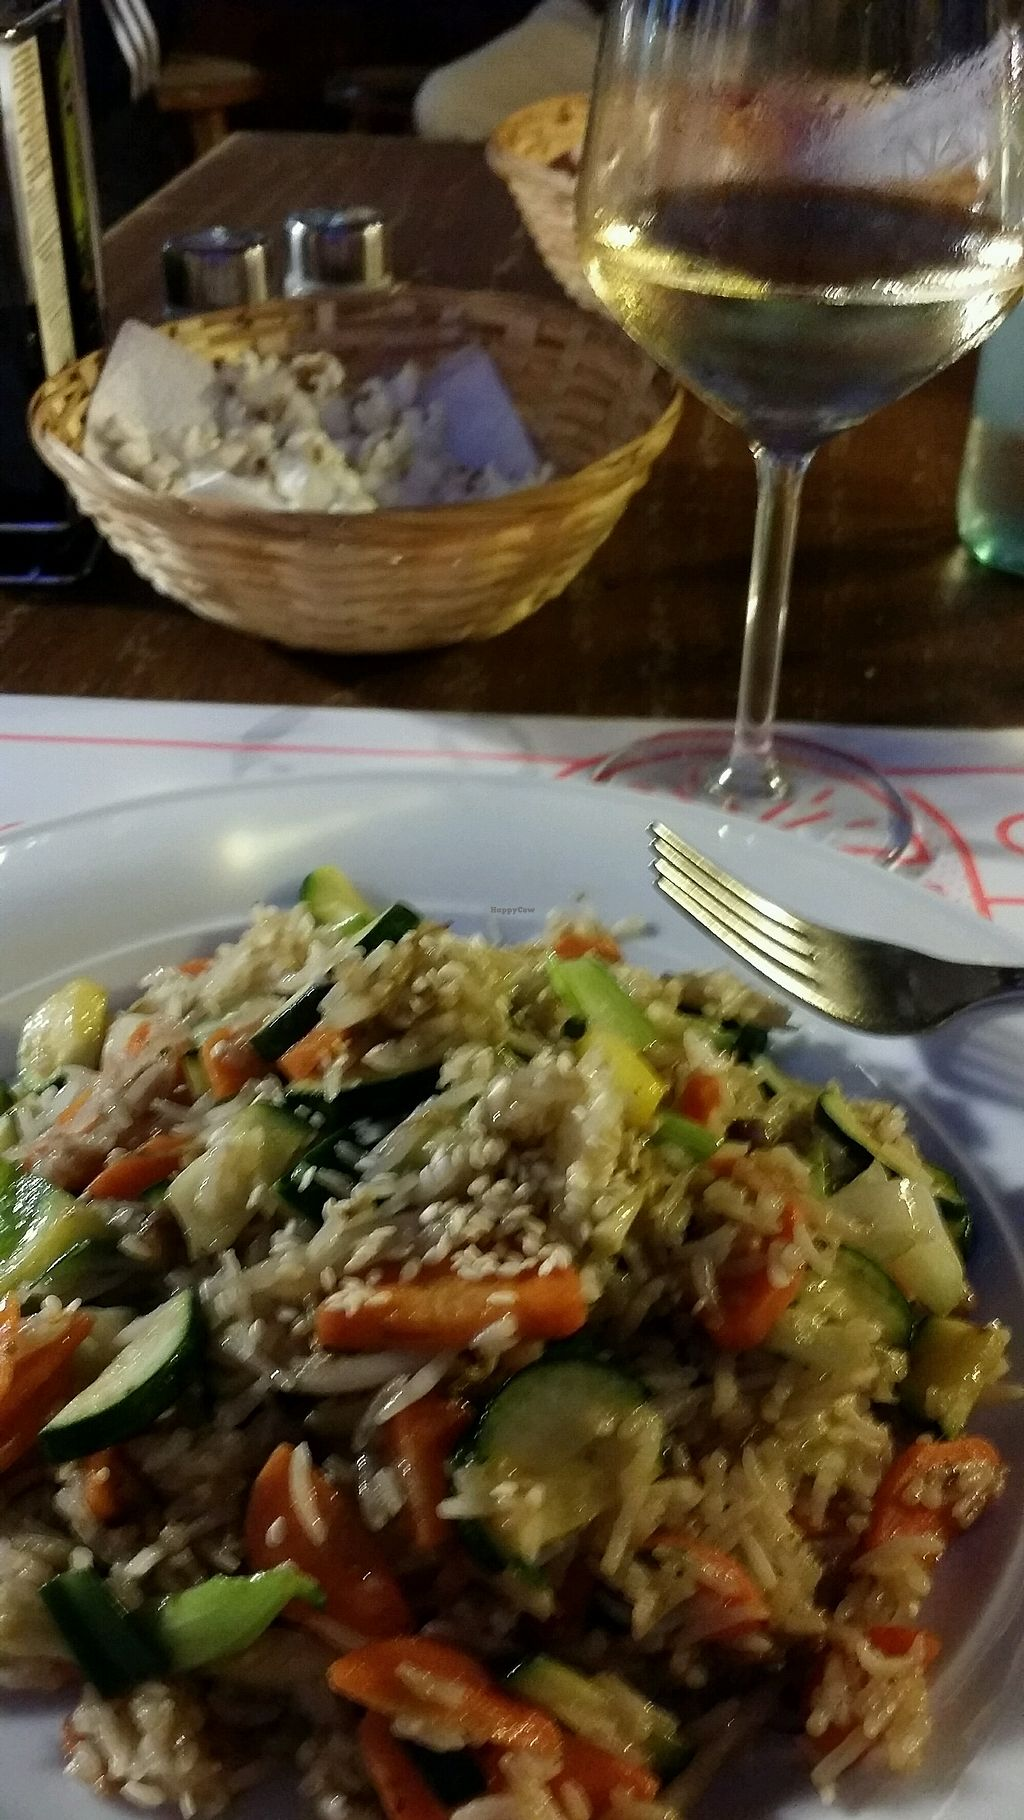 """Photo of Nadamas  by <a href=""""/members/profile/Travelerdutch"""">Travelerdutch</a> <br/>thai dish <br/> October 2, 2017  - <a href='/contact/abuse/image/57876/310986'>Report</a>"""